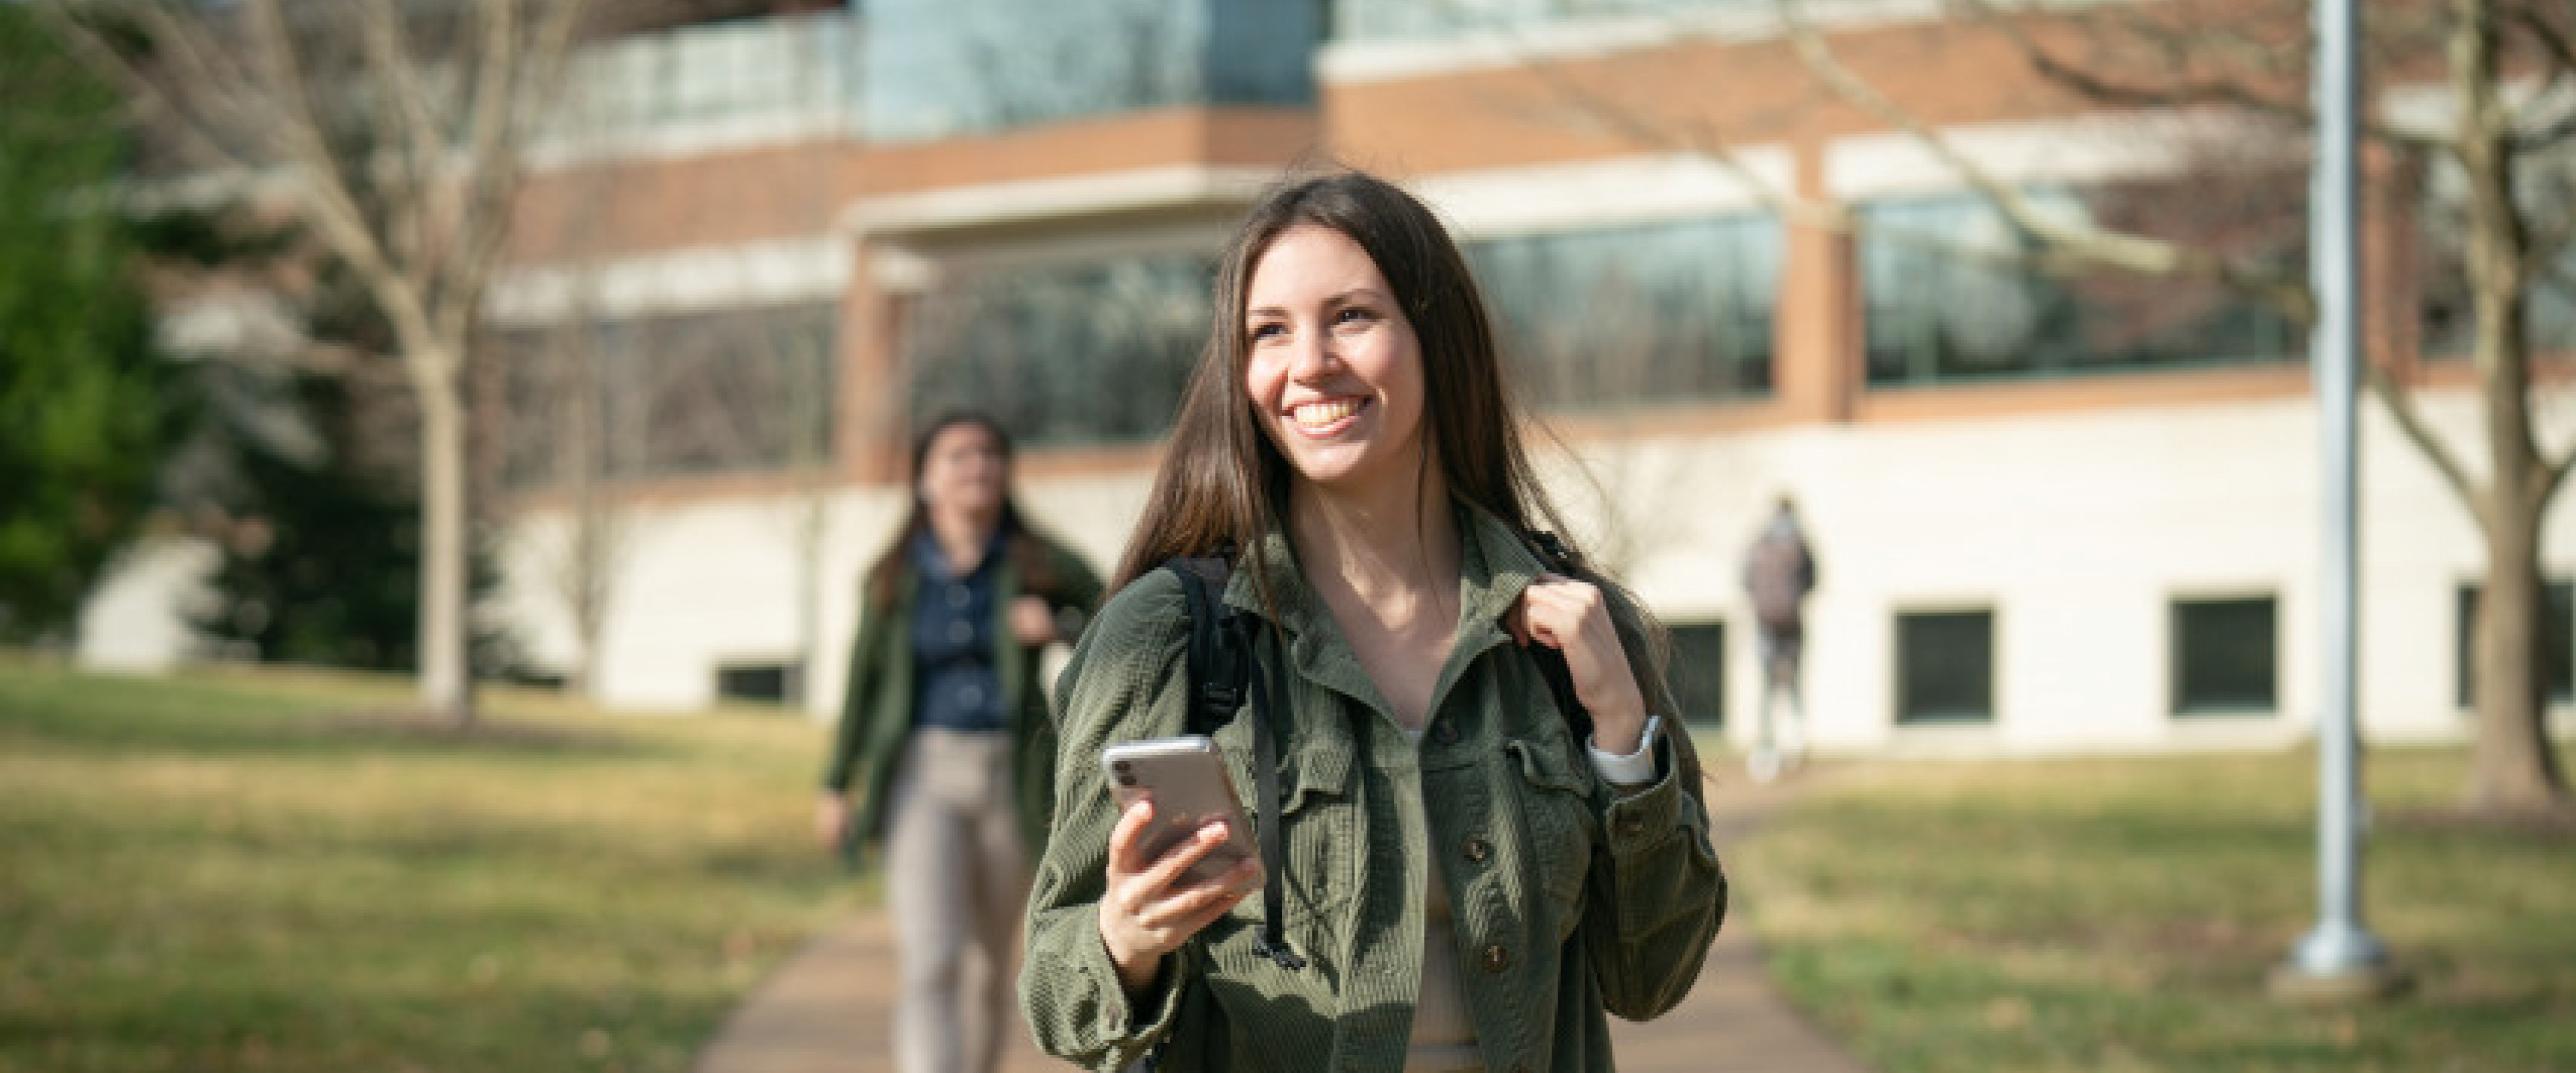 Student walking outside Schneider Hall wearing a backpack and smiling